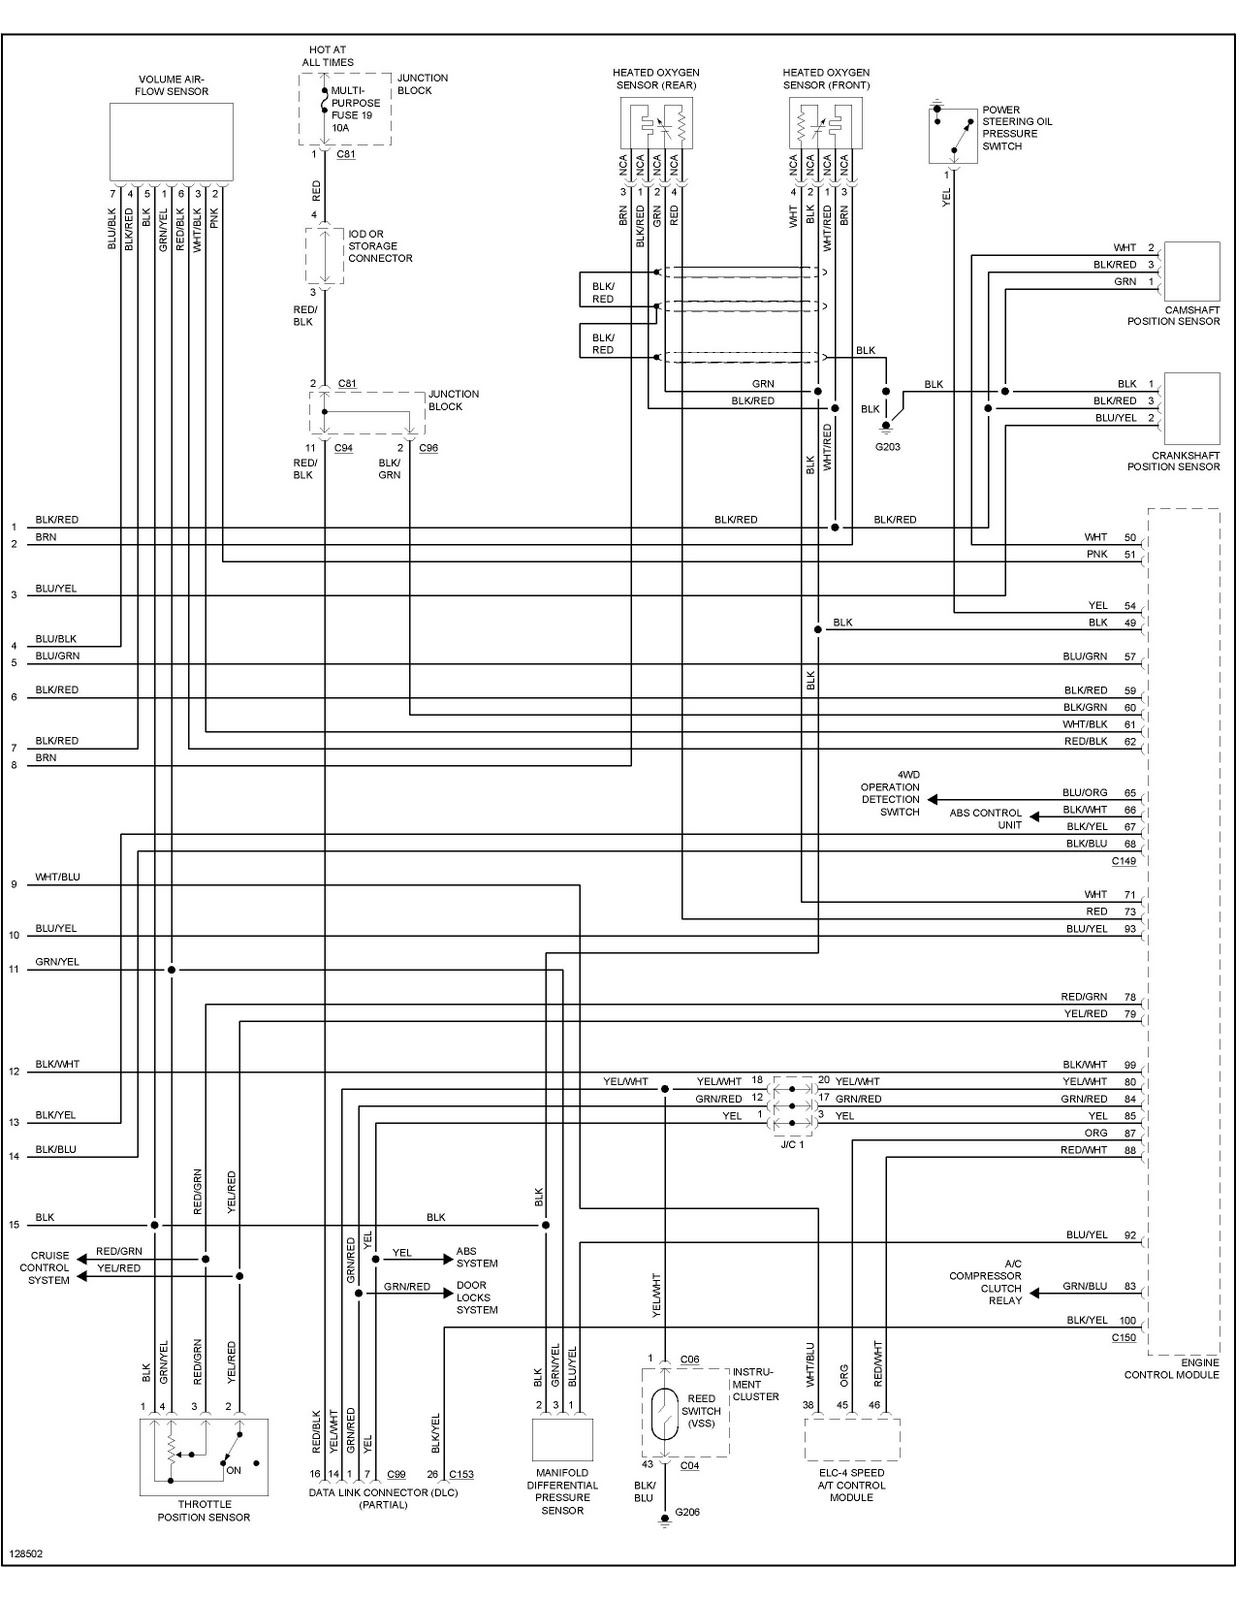 medium resolution of wiring diagram for 2002 mitsubishi montero 1998 mitsubishi 2002 mitsubishi eclipse wiring diagram 2002 mitsubishi eclipse wiring diagram